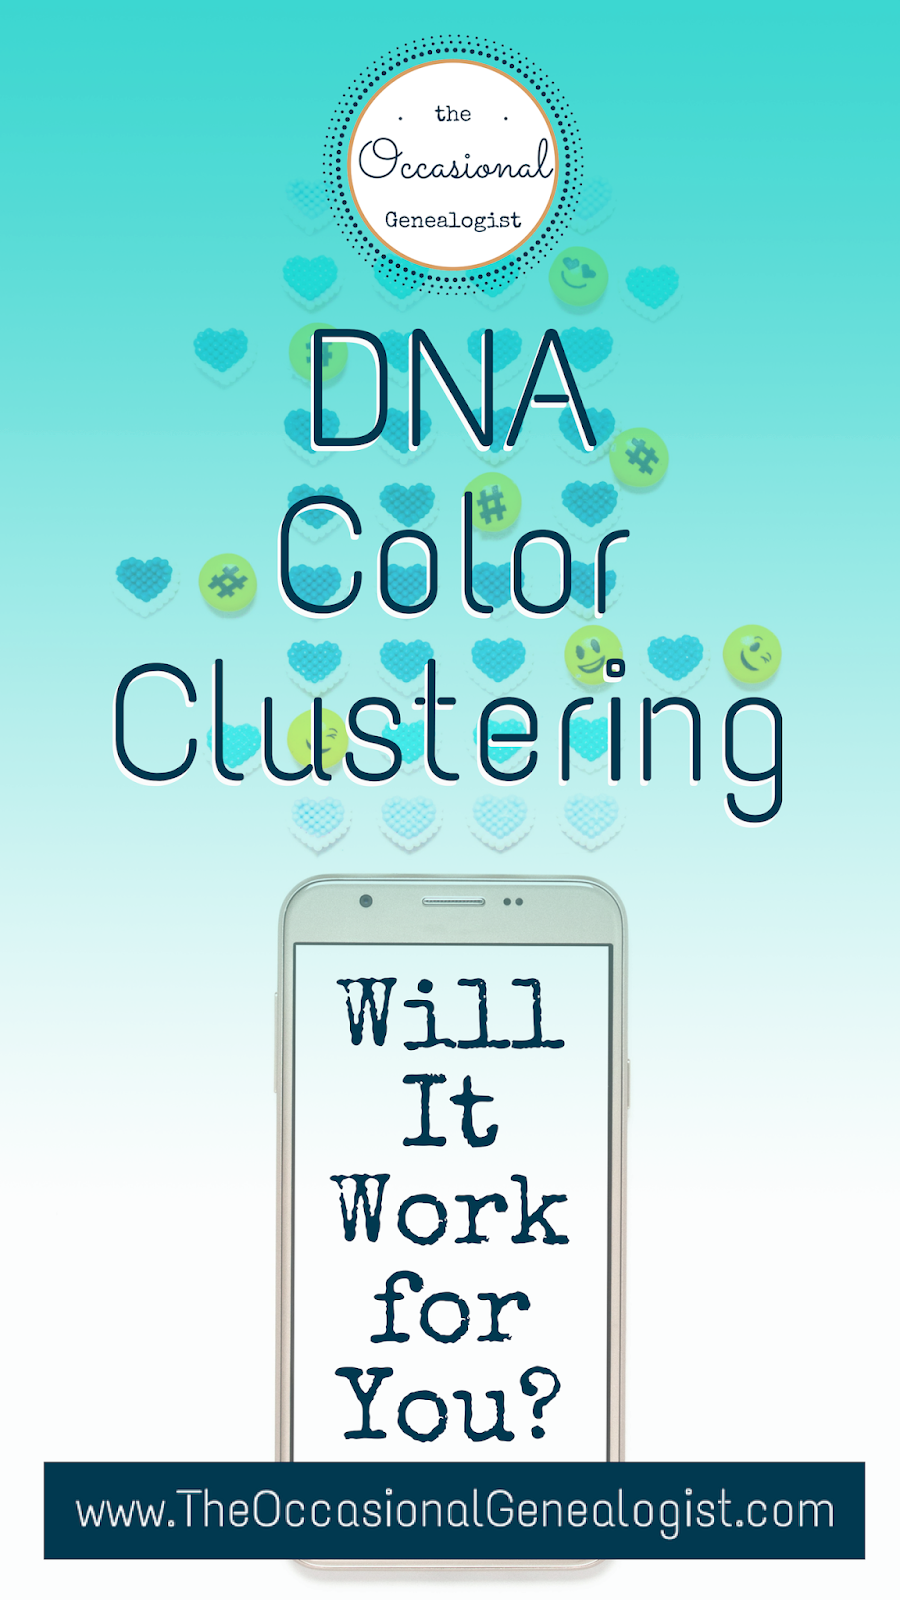 Auto-clustering, Genetic Networks, and Kissing Cousins